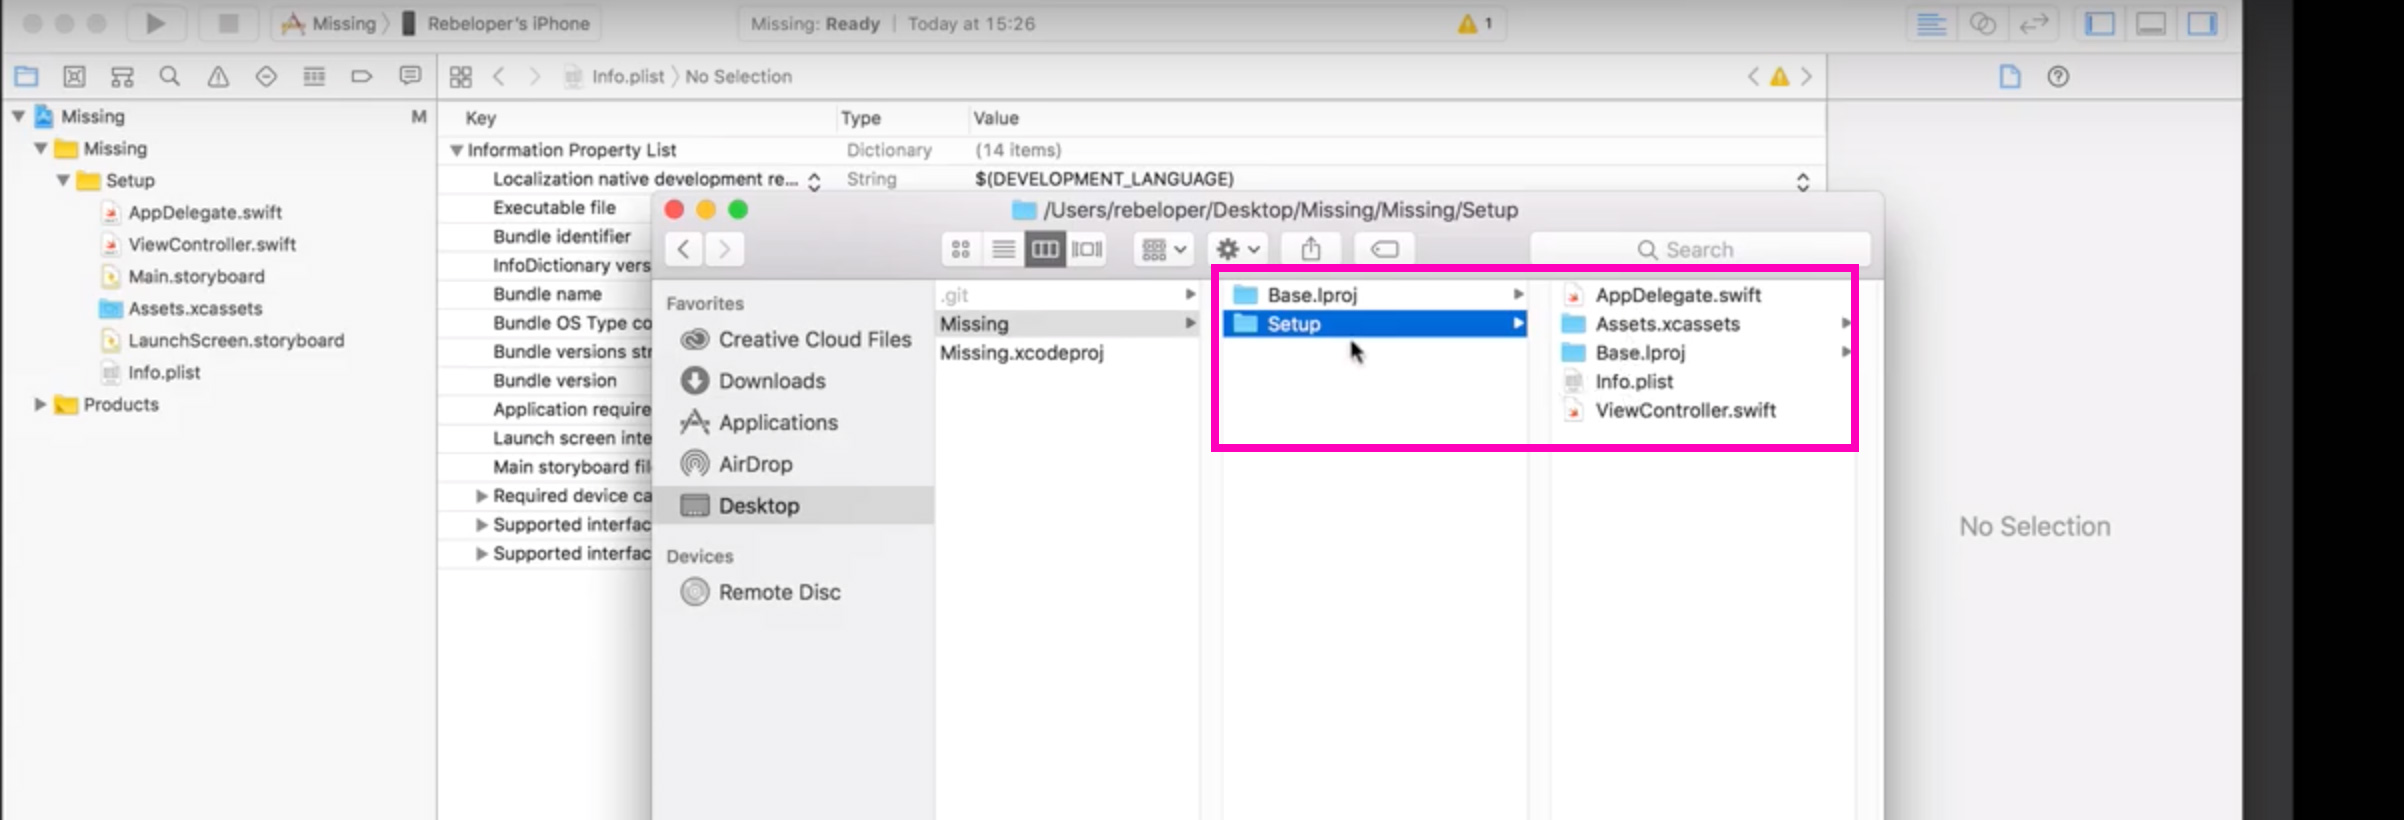 Missing Info plist File Issue Solved in 3 Steps [2019